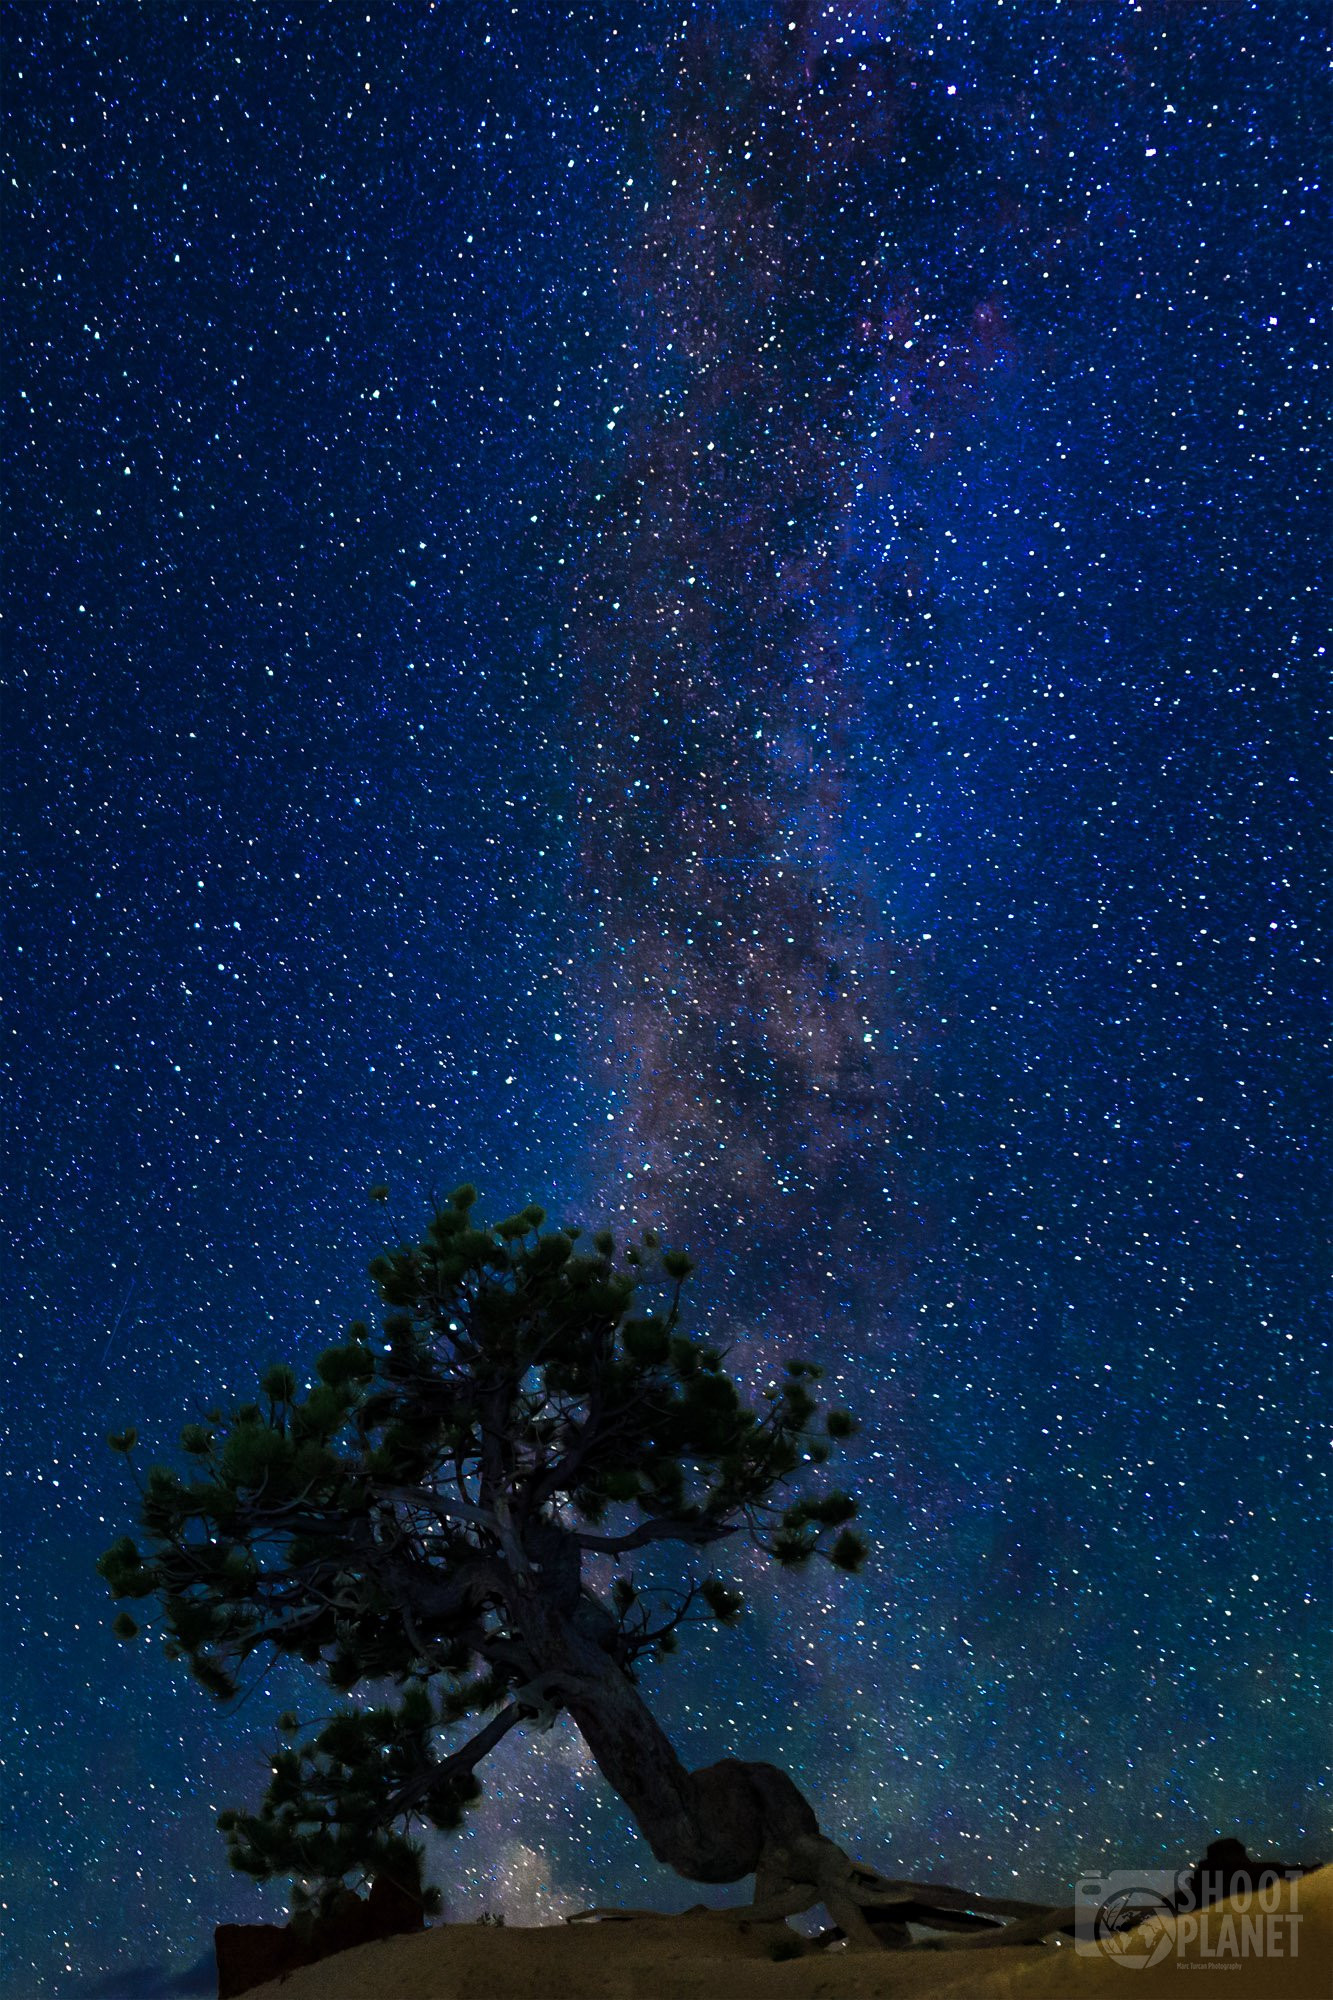 Bryce Canyon Milky Way and tree, USA